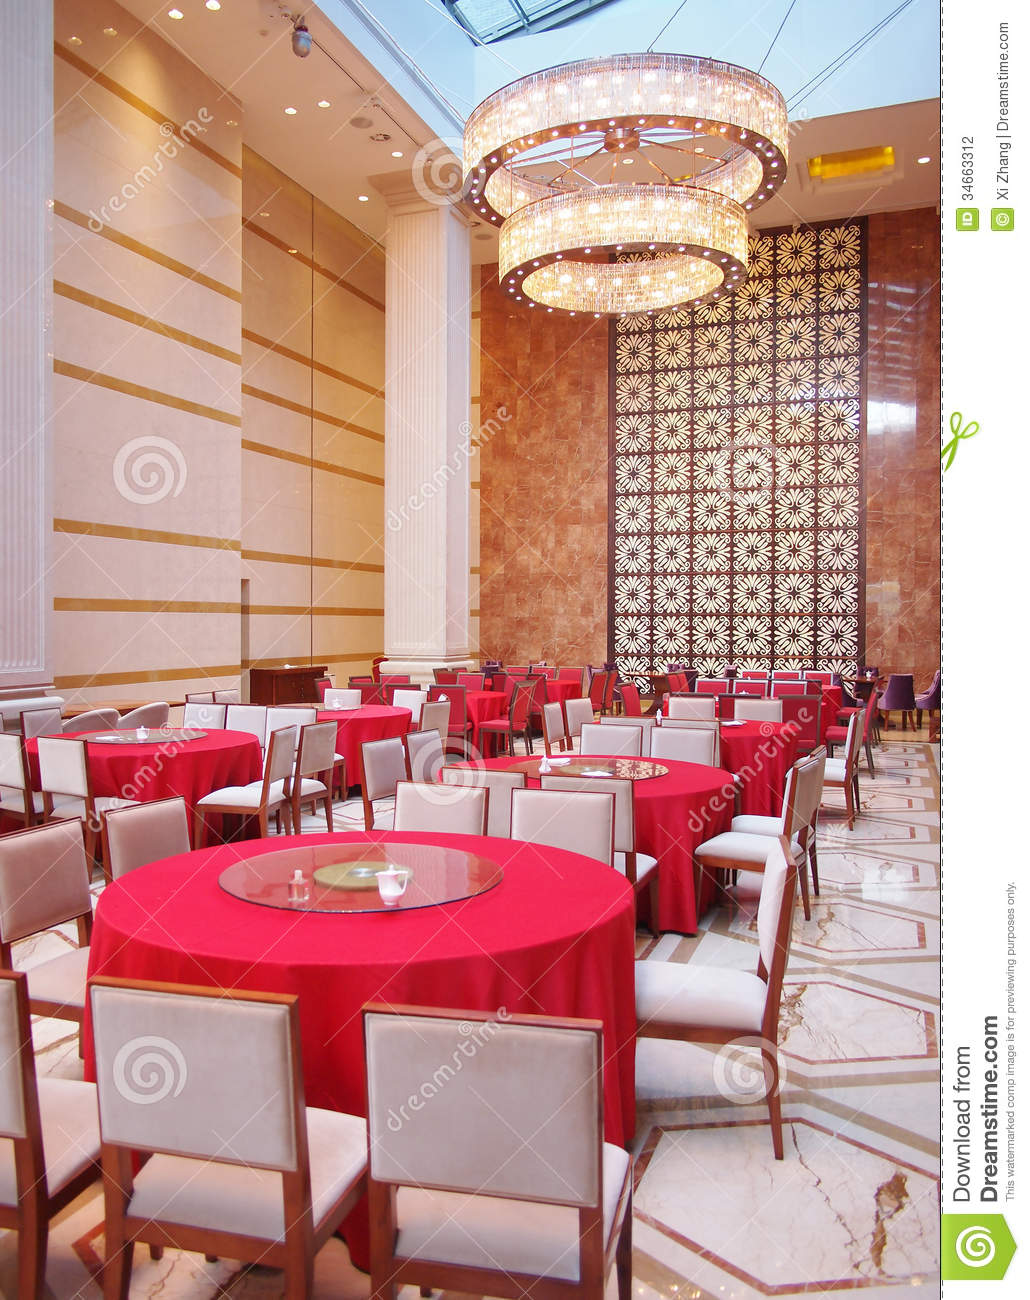 Hotel dining hall stock photography image 34663312 for Dining hall interior